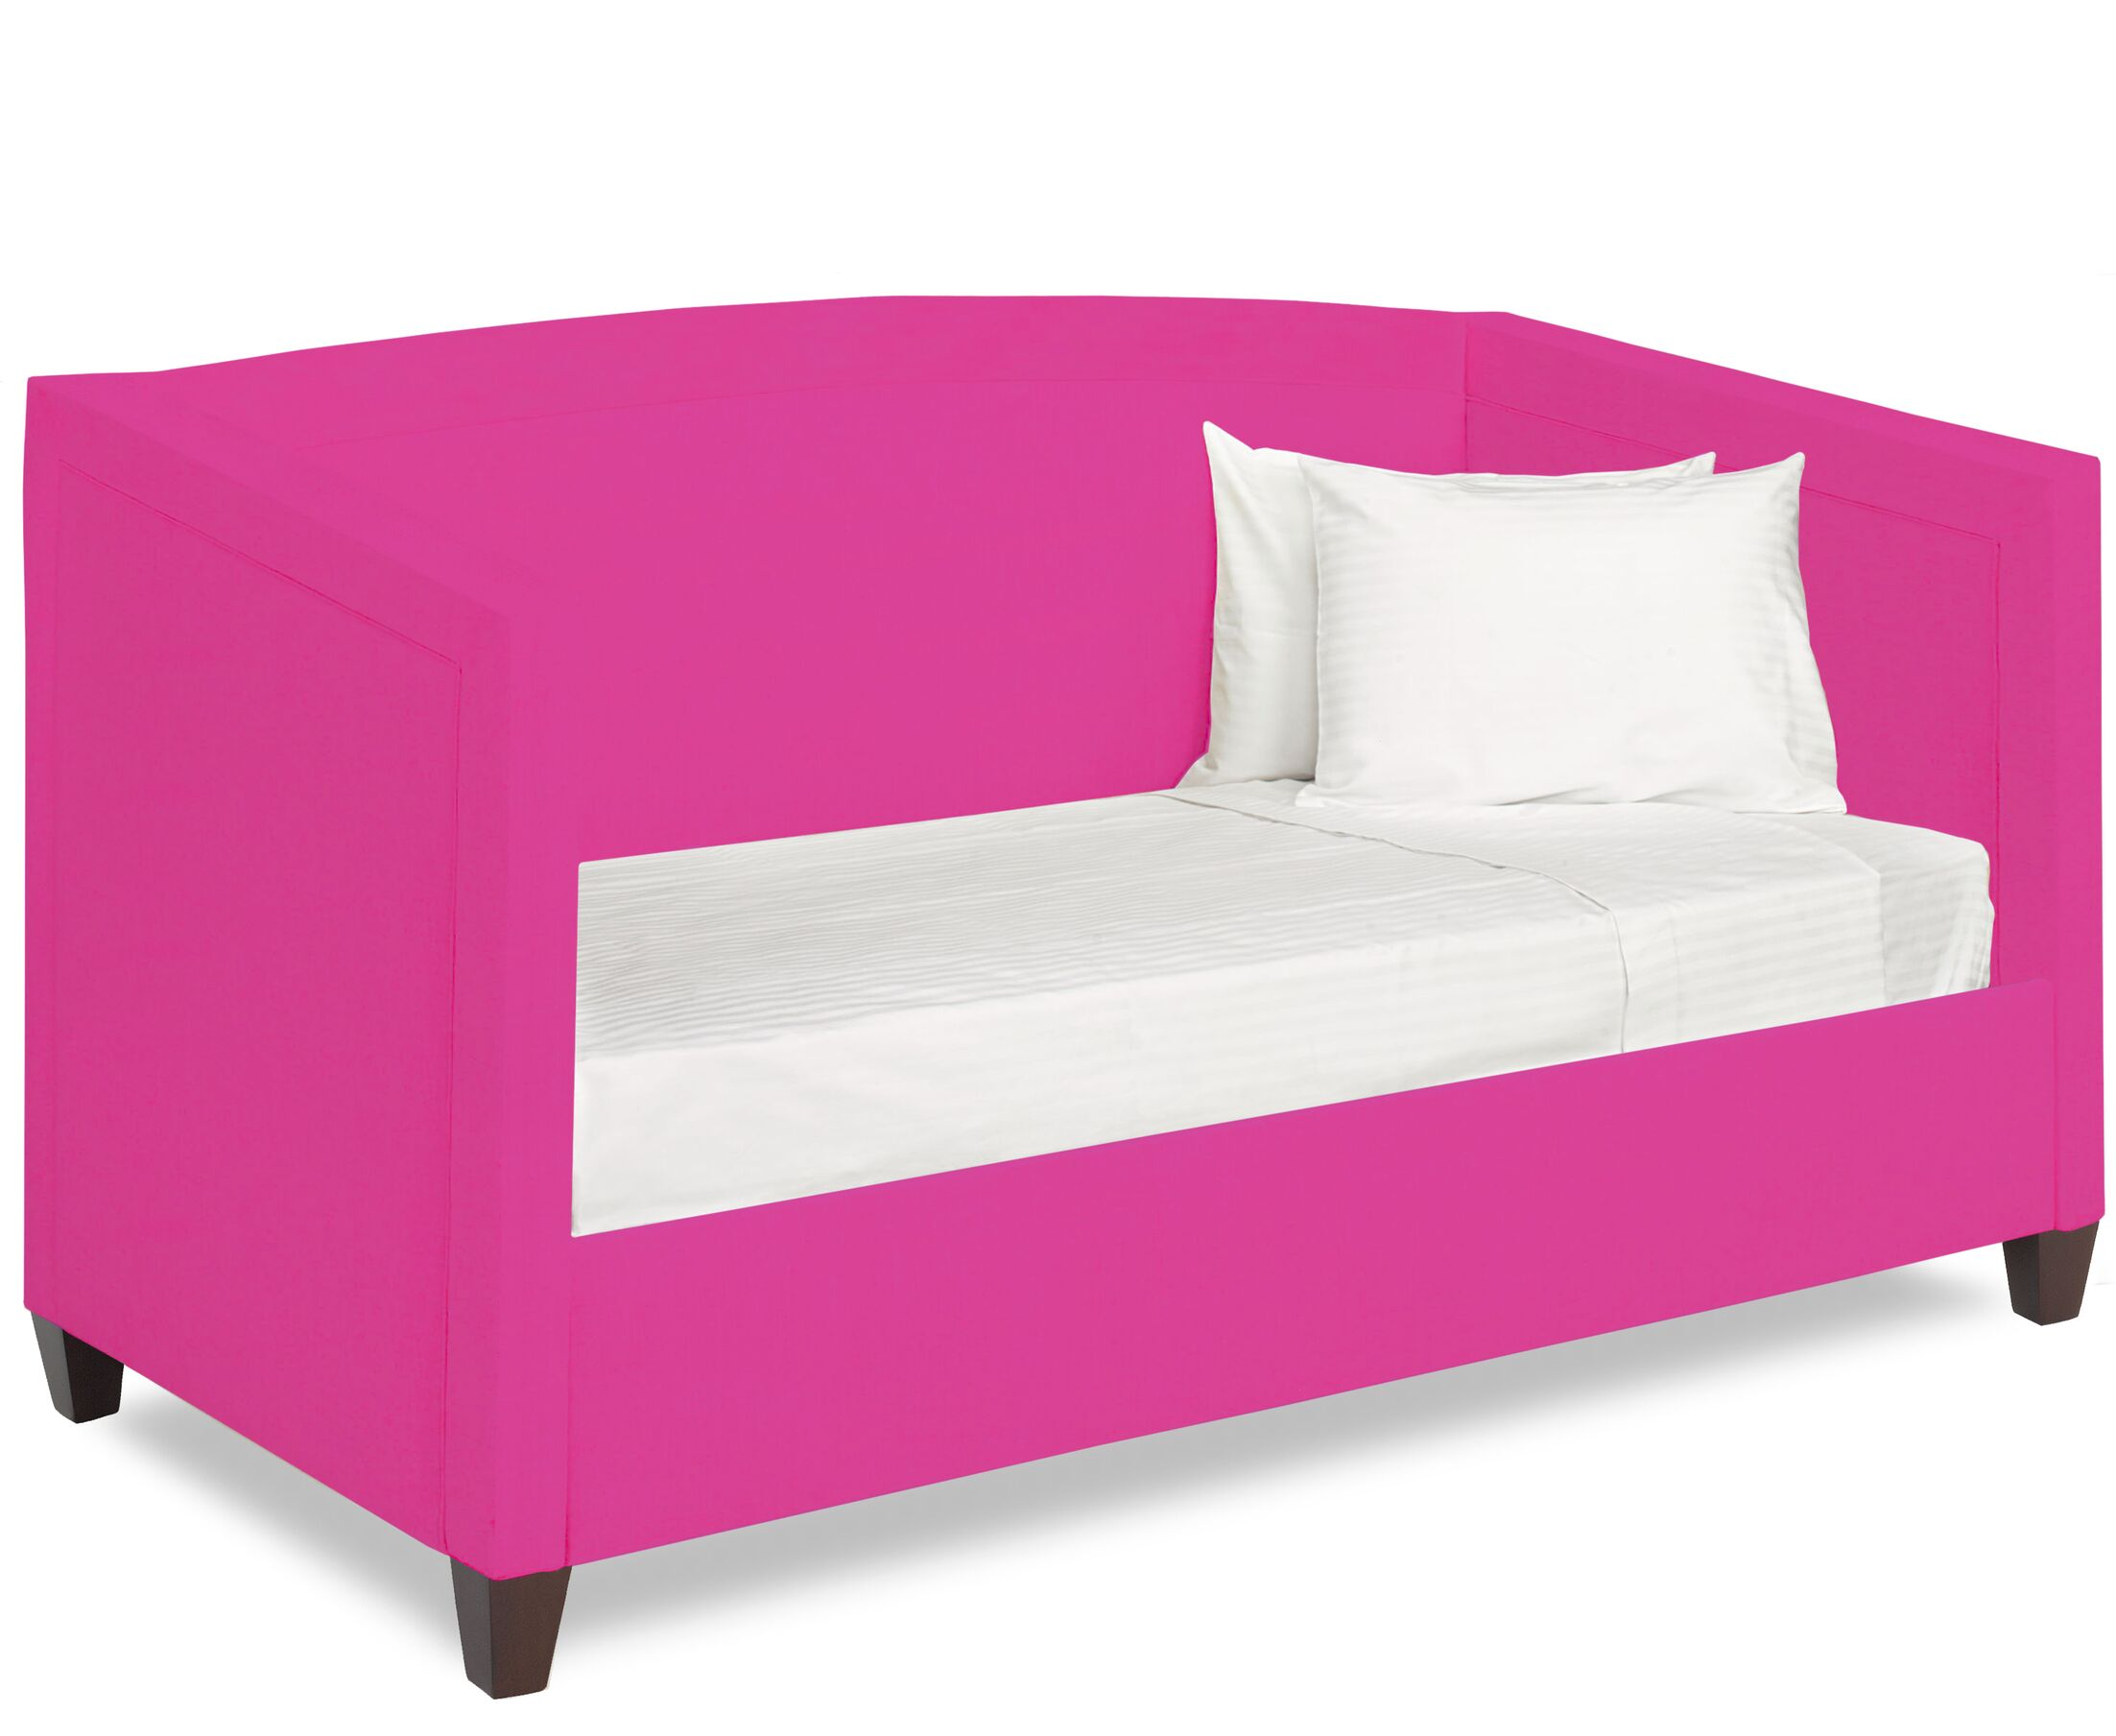 Dreamtime Daybed with Mattress Size: Twin, Color: Fuchsia